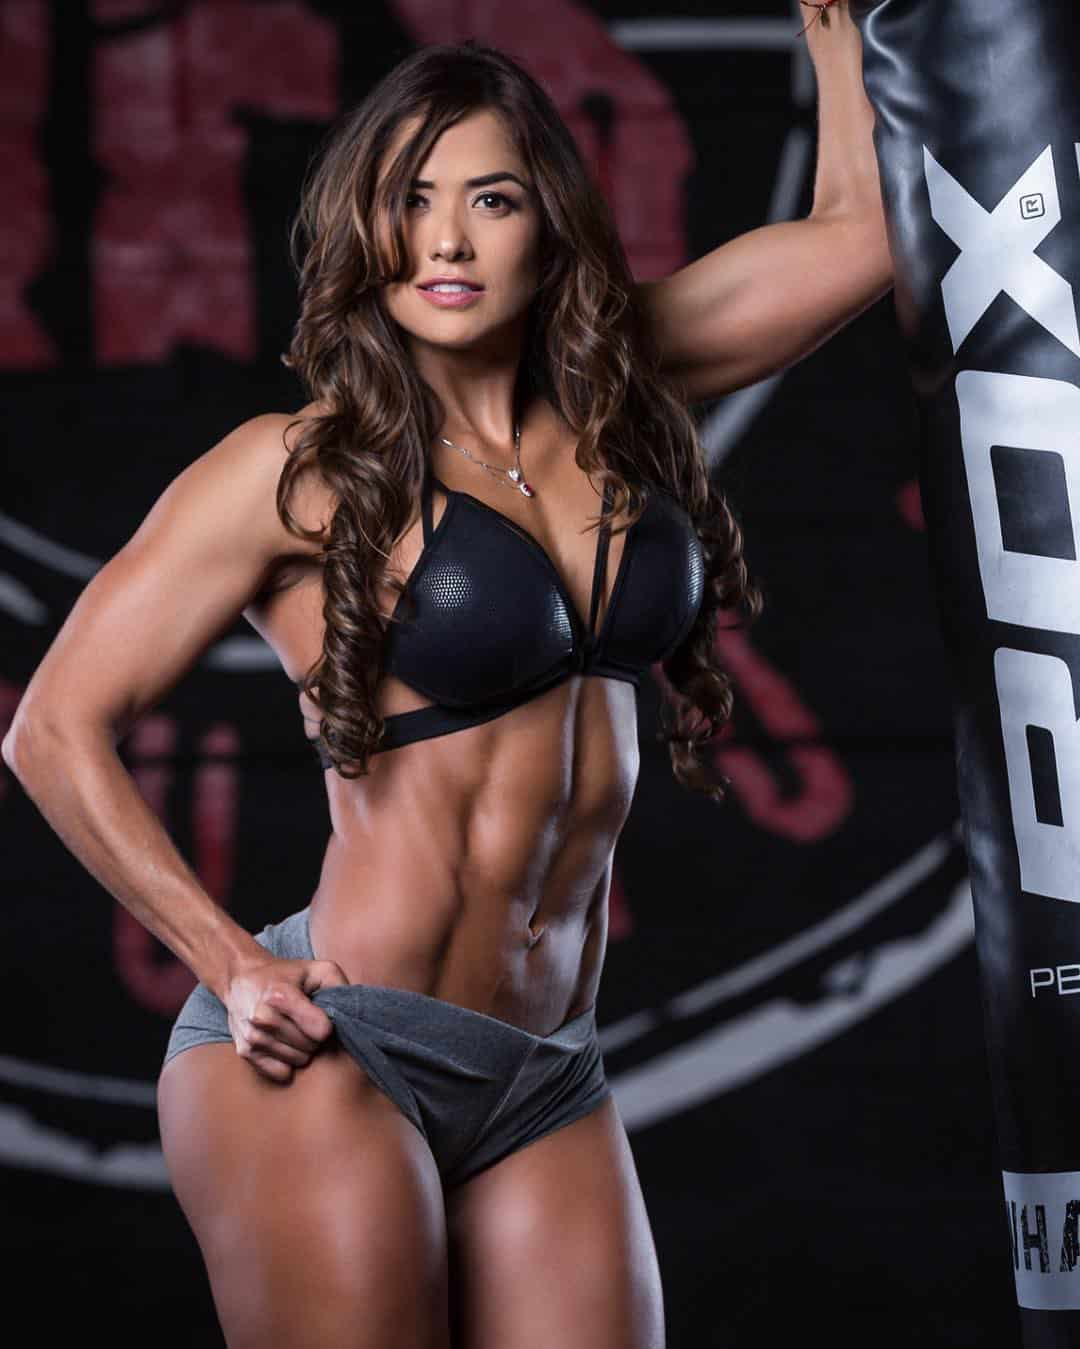 strong and feminine Tatiana Girardi